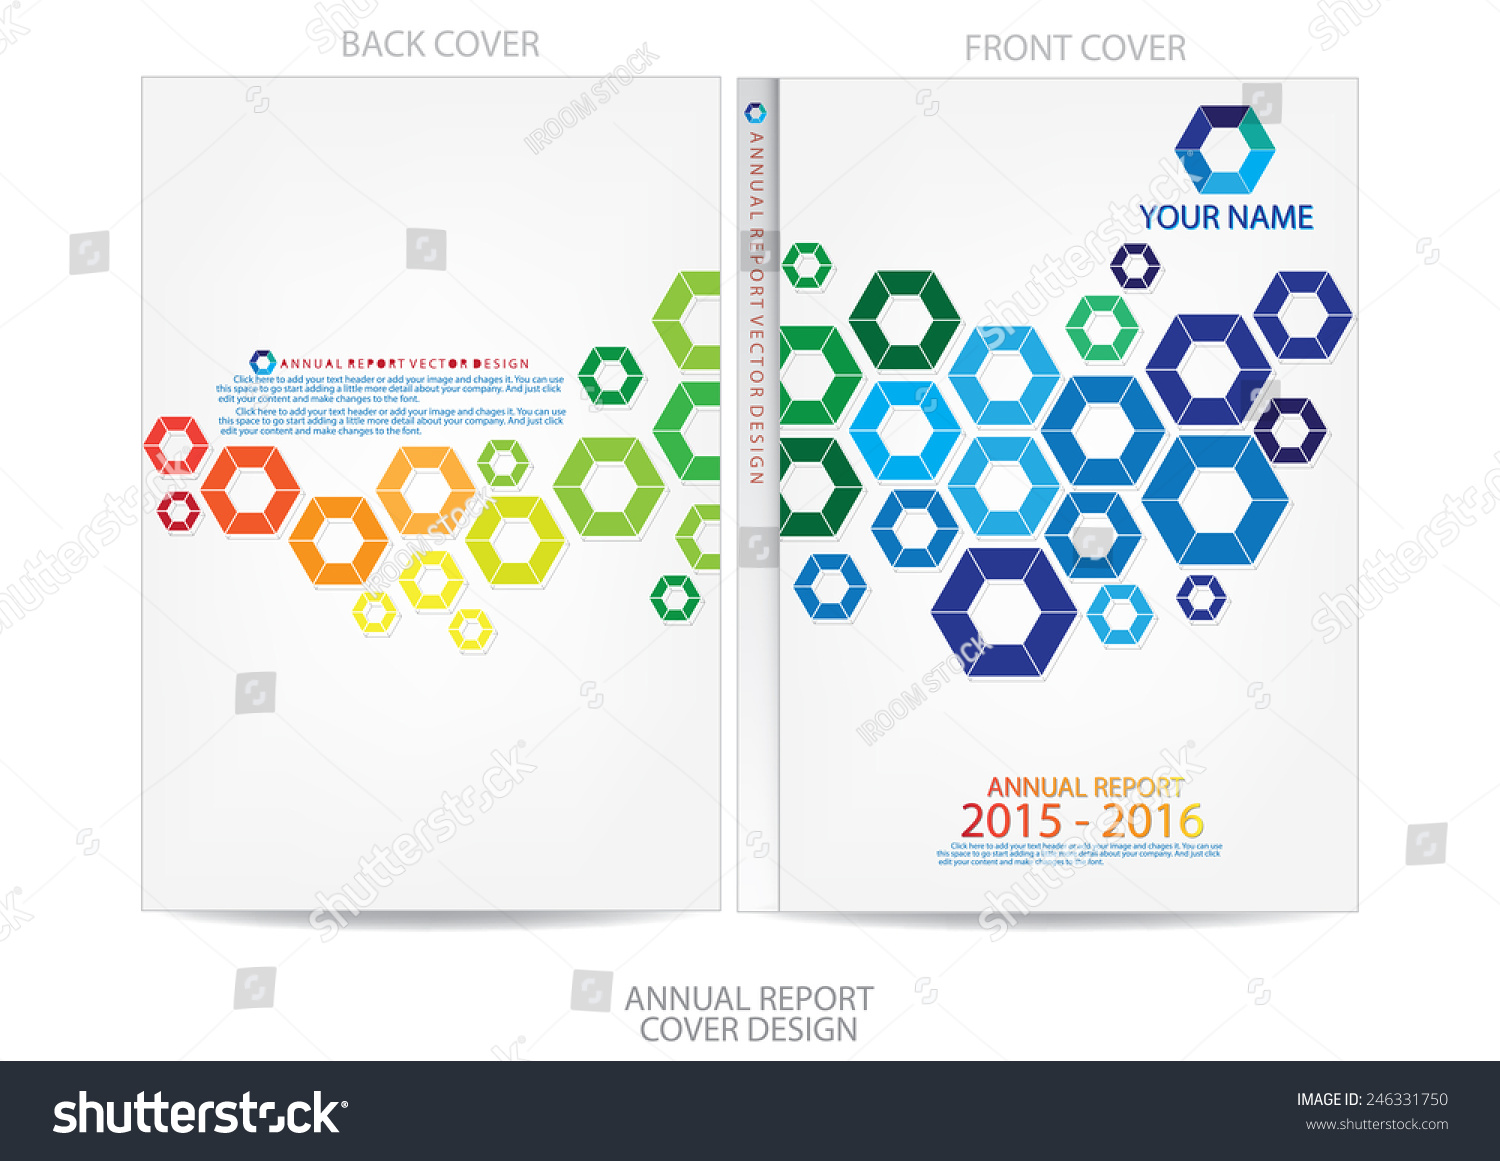 Royalty-free Annual report cover design #246331750 Stock Photo ...